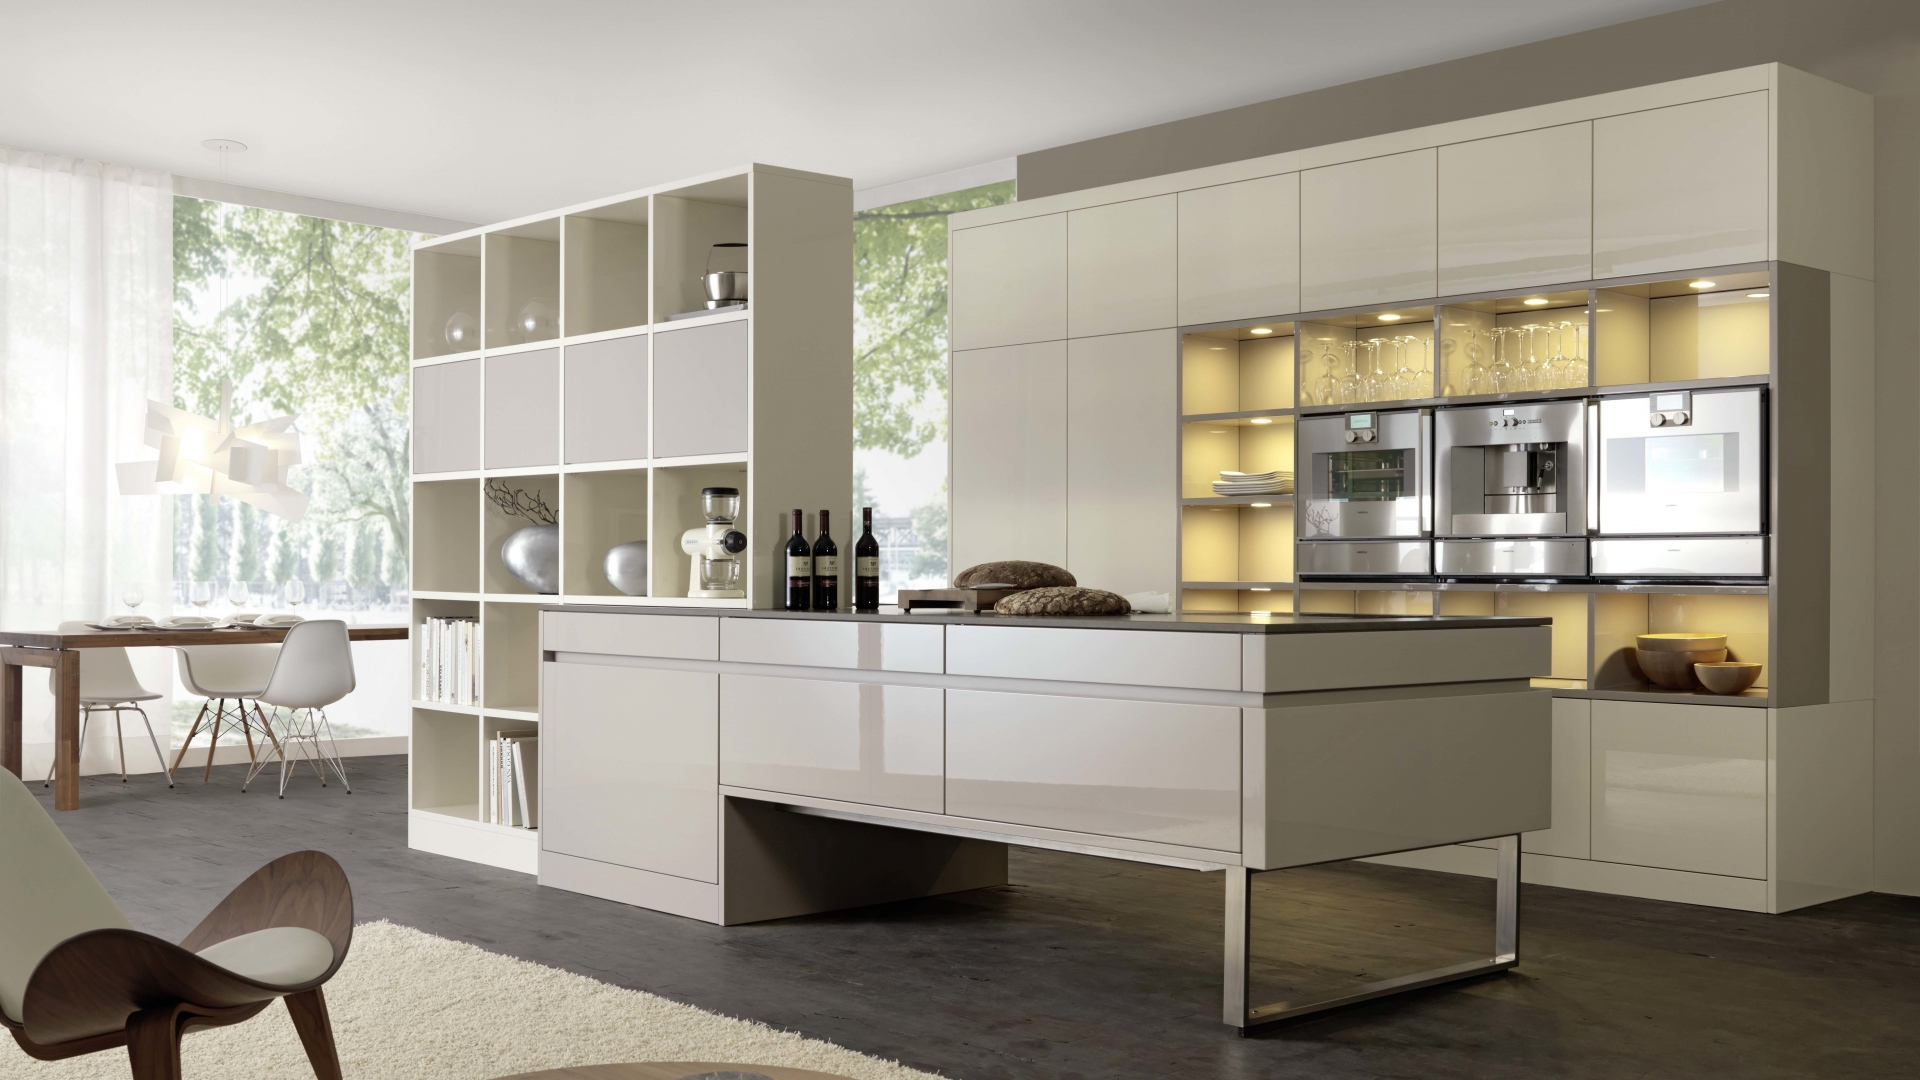 40 most beautiful kitchen wallpapers for free download - Decorating wallpapers for interior ...